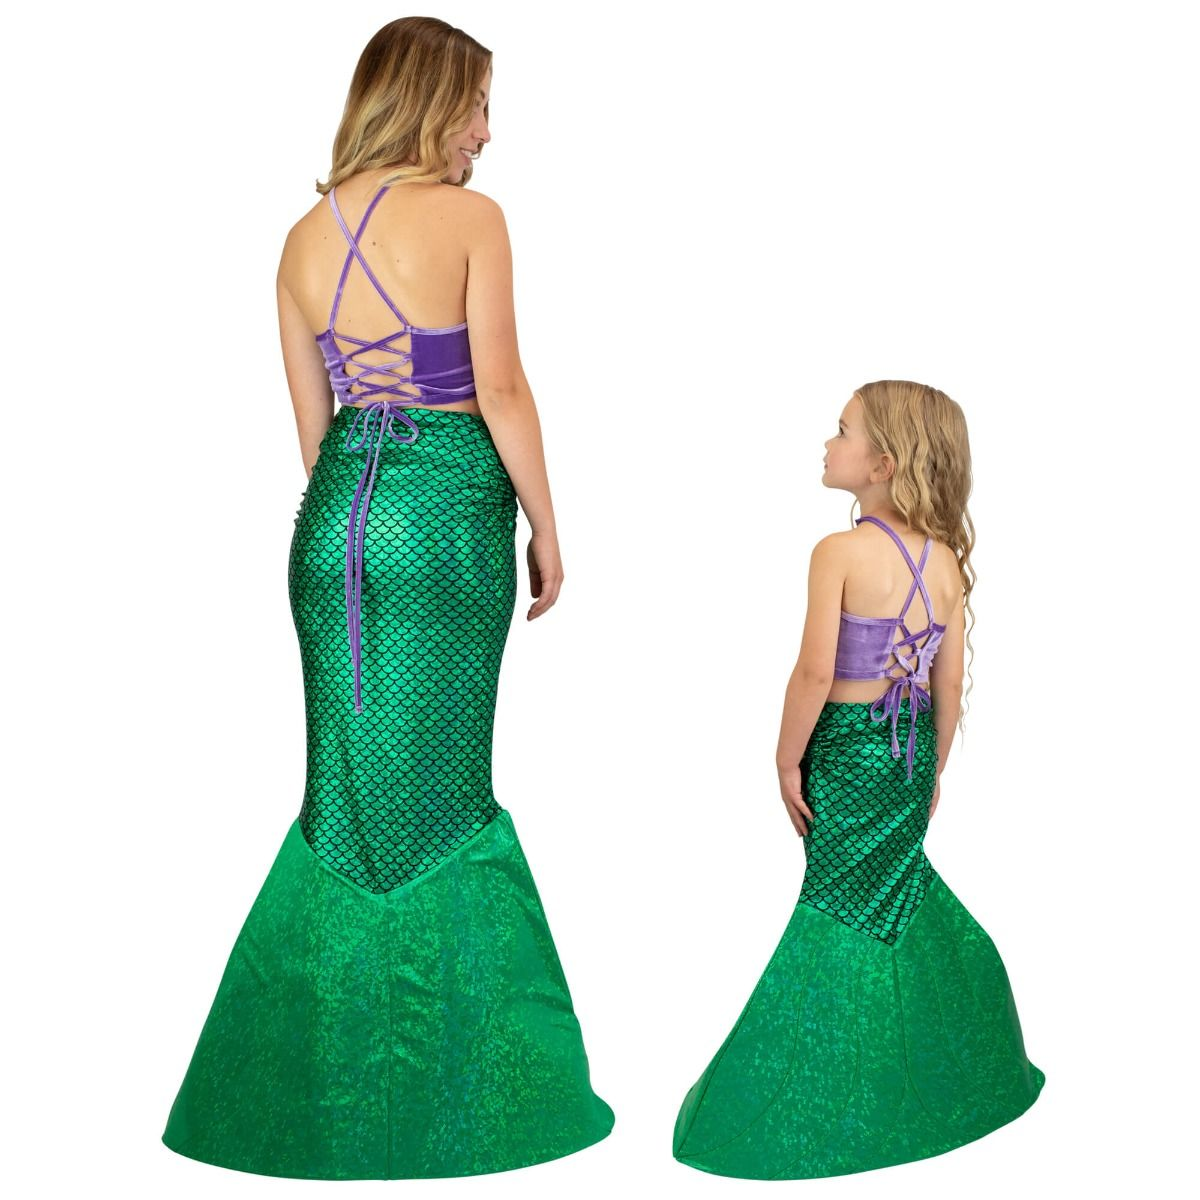 7efb87543bbbf8 ... the back view of an older and younger girl wearing the green mermaid  tail costume with ...